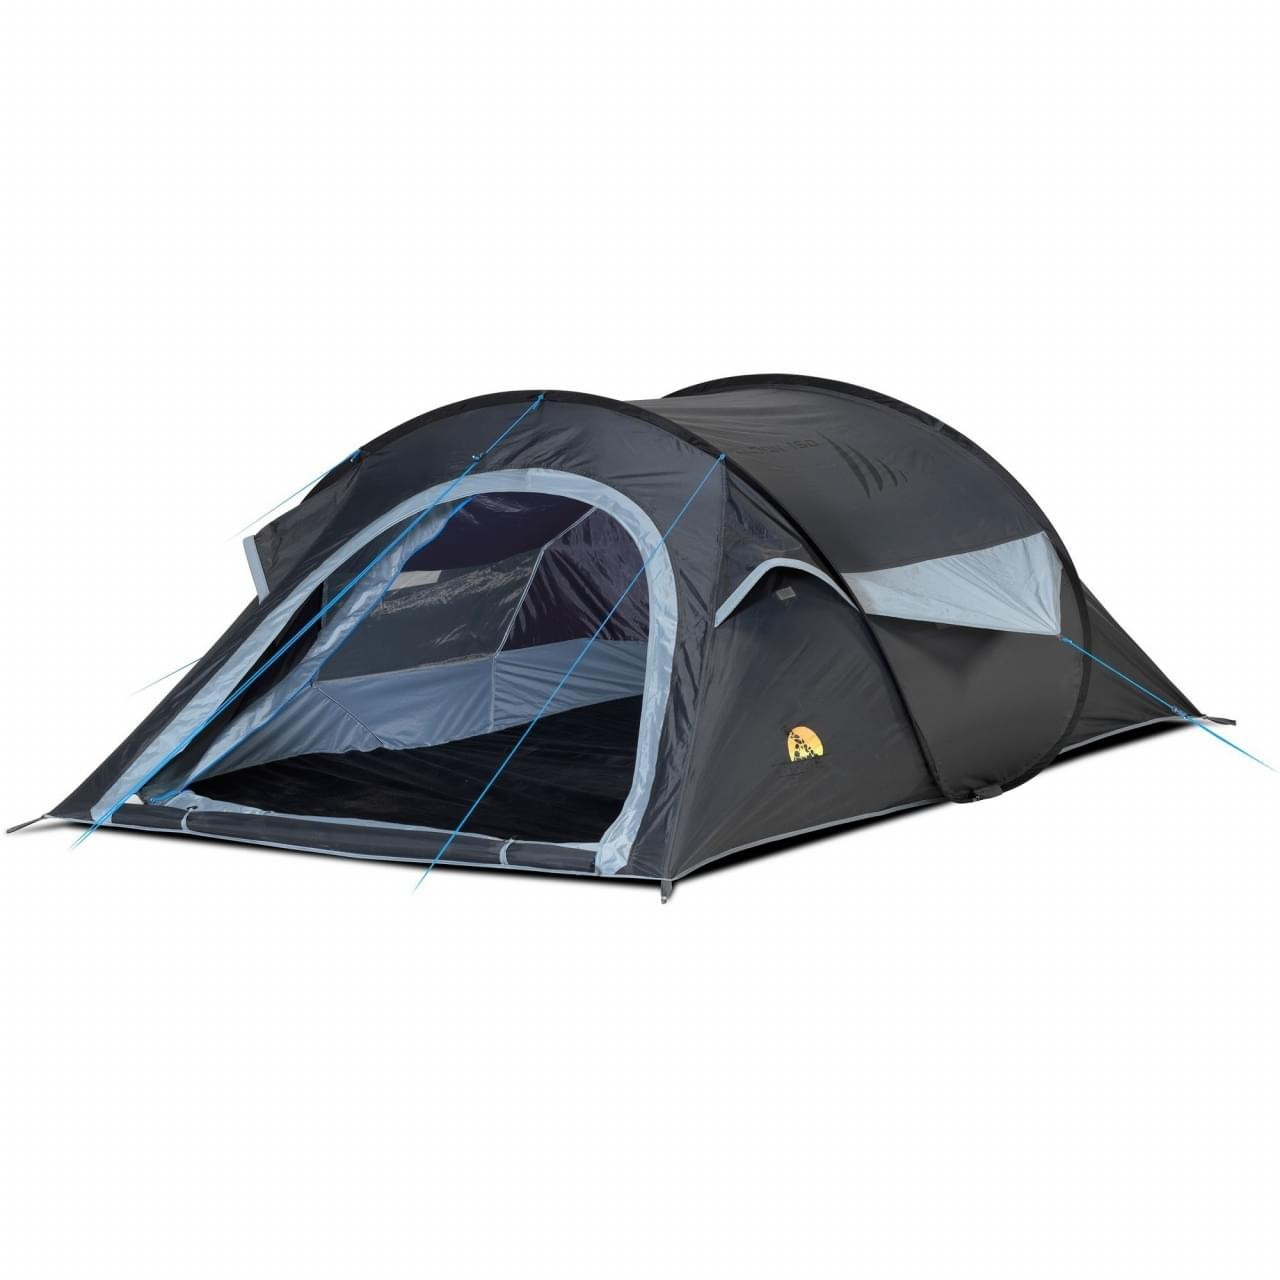 Safarica Cycloon 150 Pop-up tent